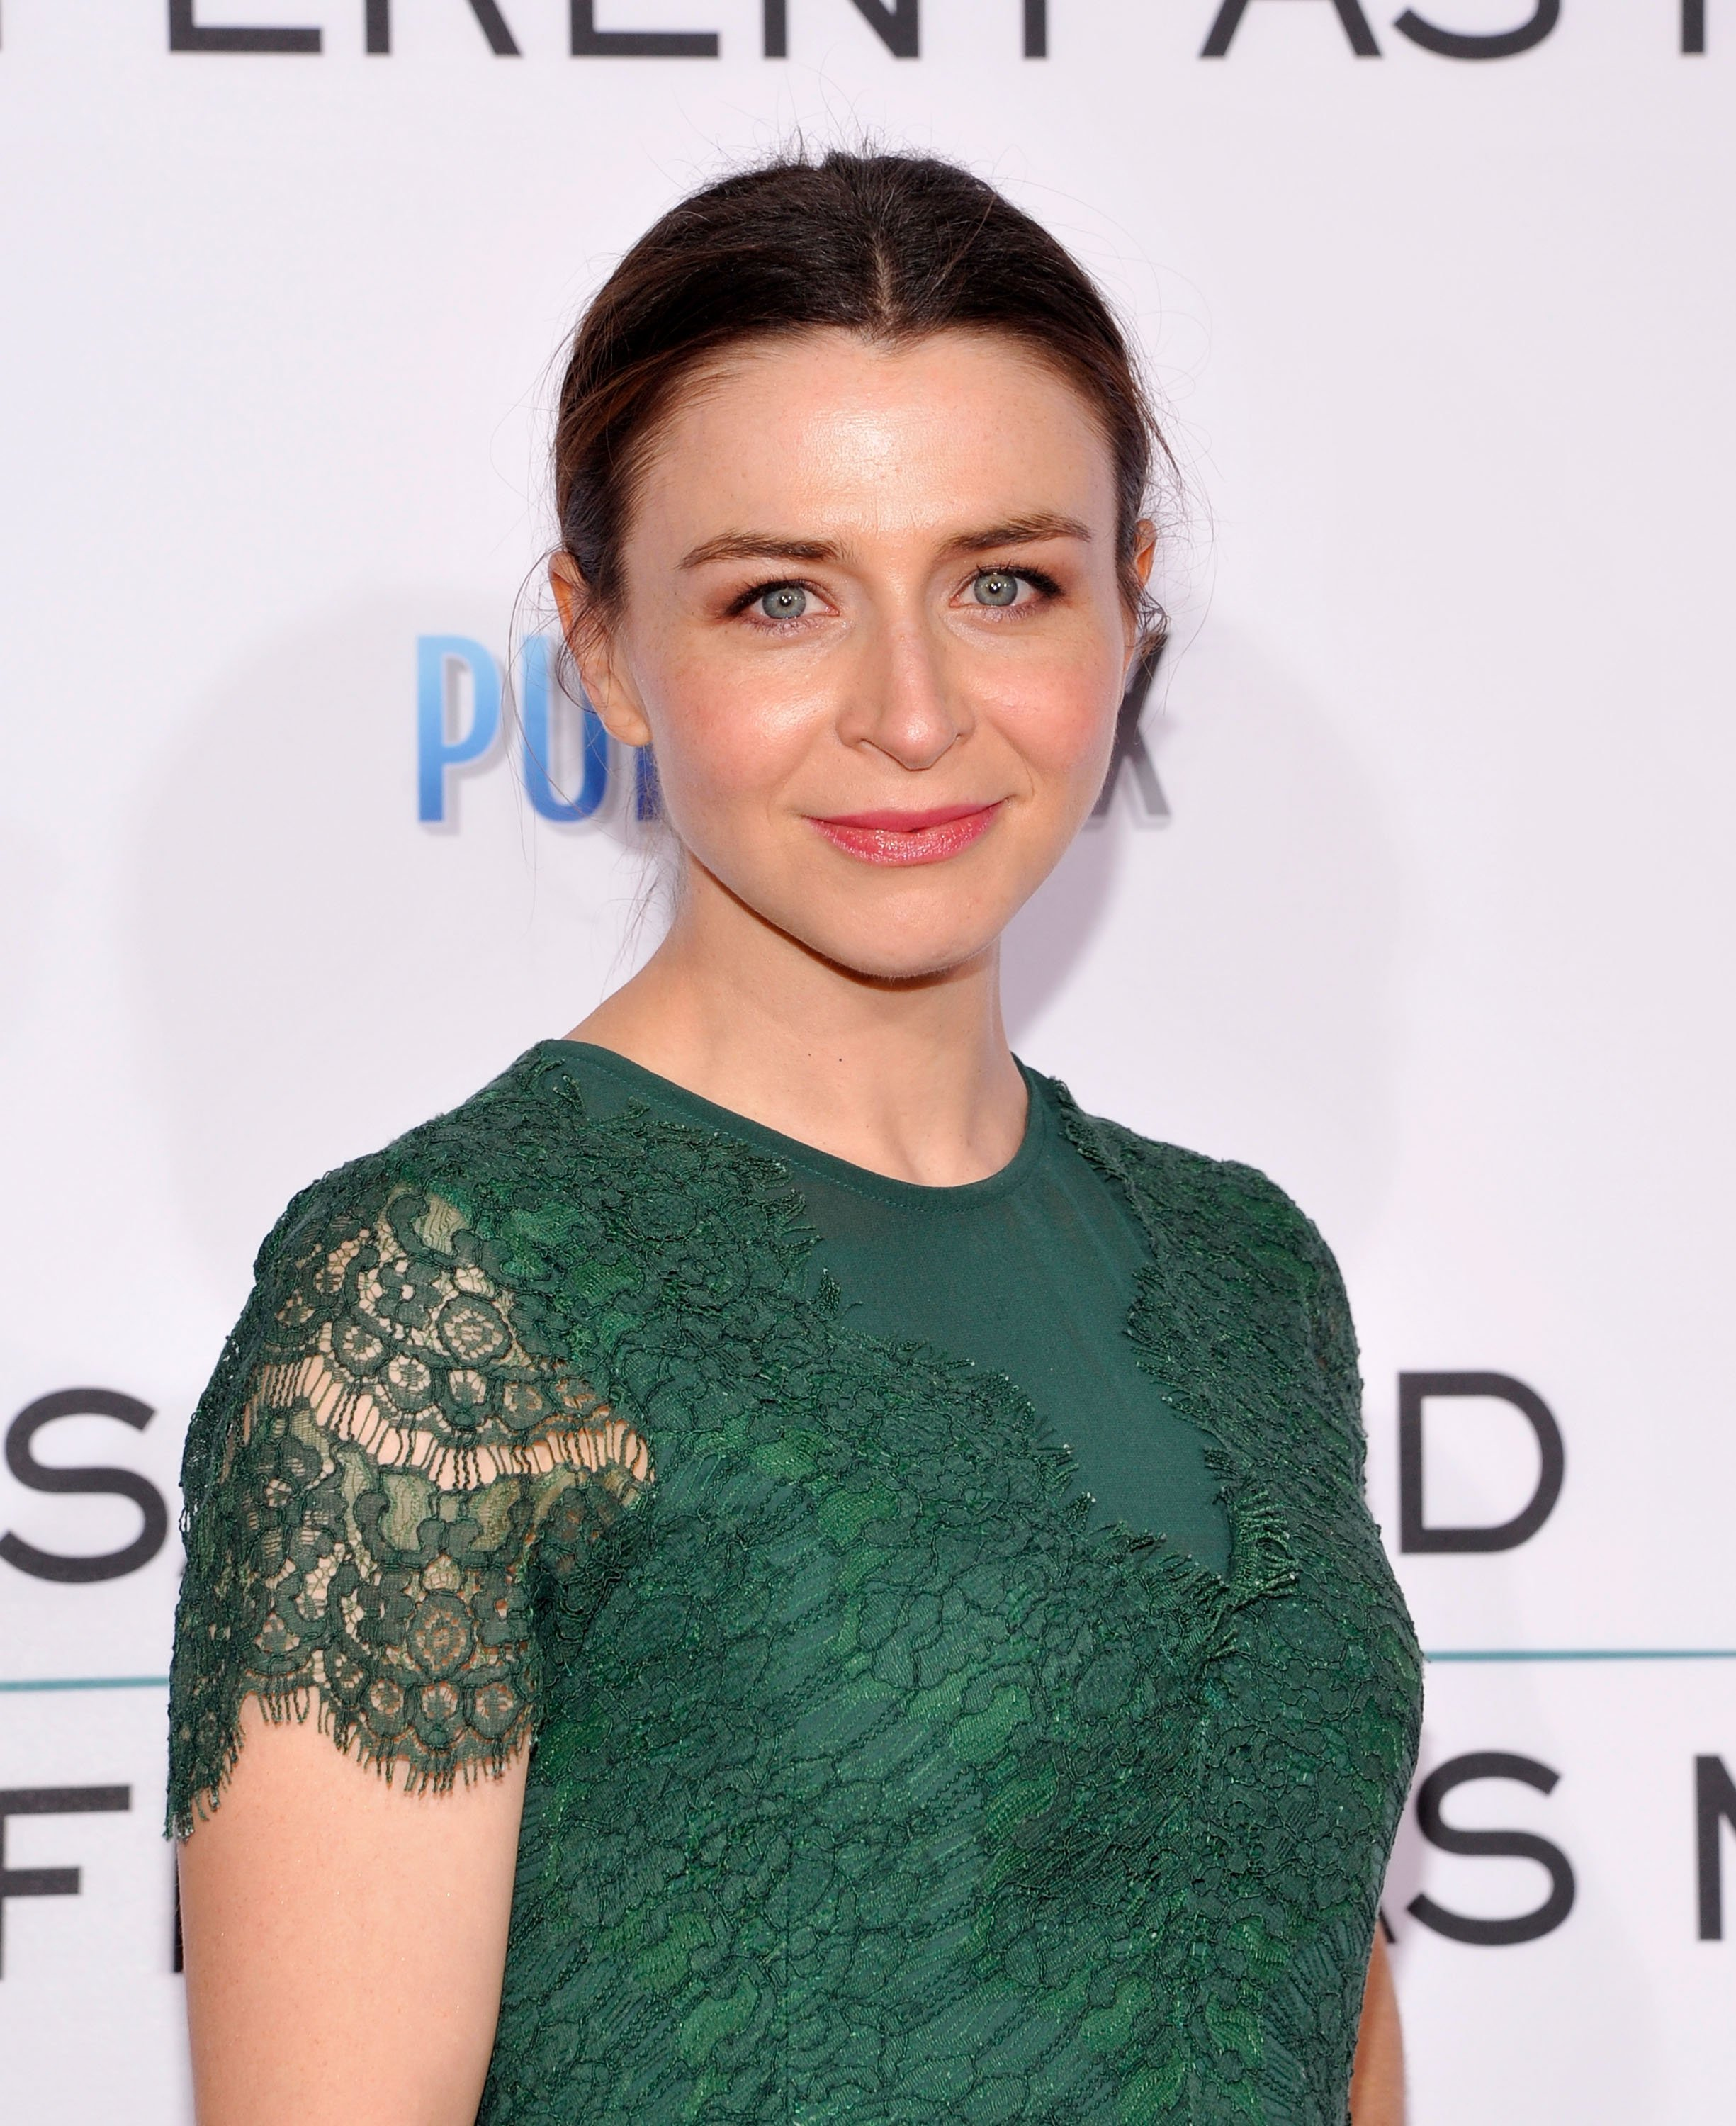 Caterina Scorsone at the People's Choice Awards in Los Angeles in 2017 | Photo: Getty Images